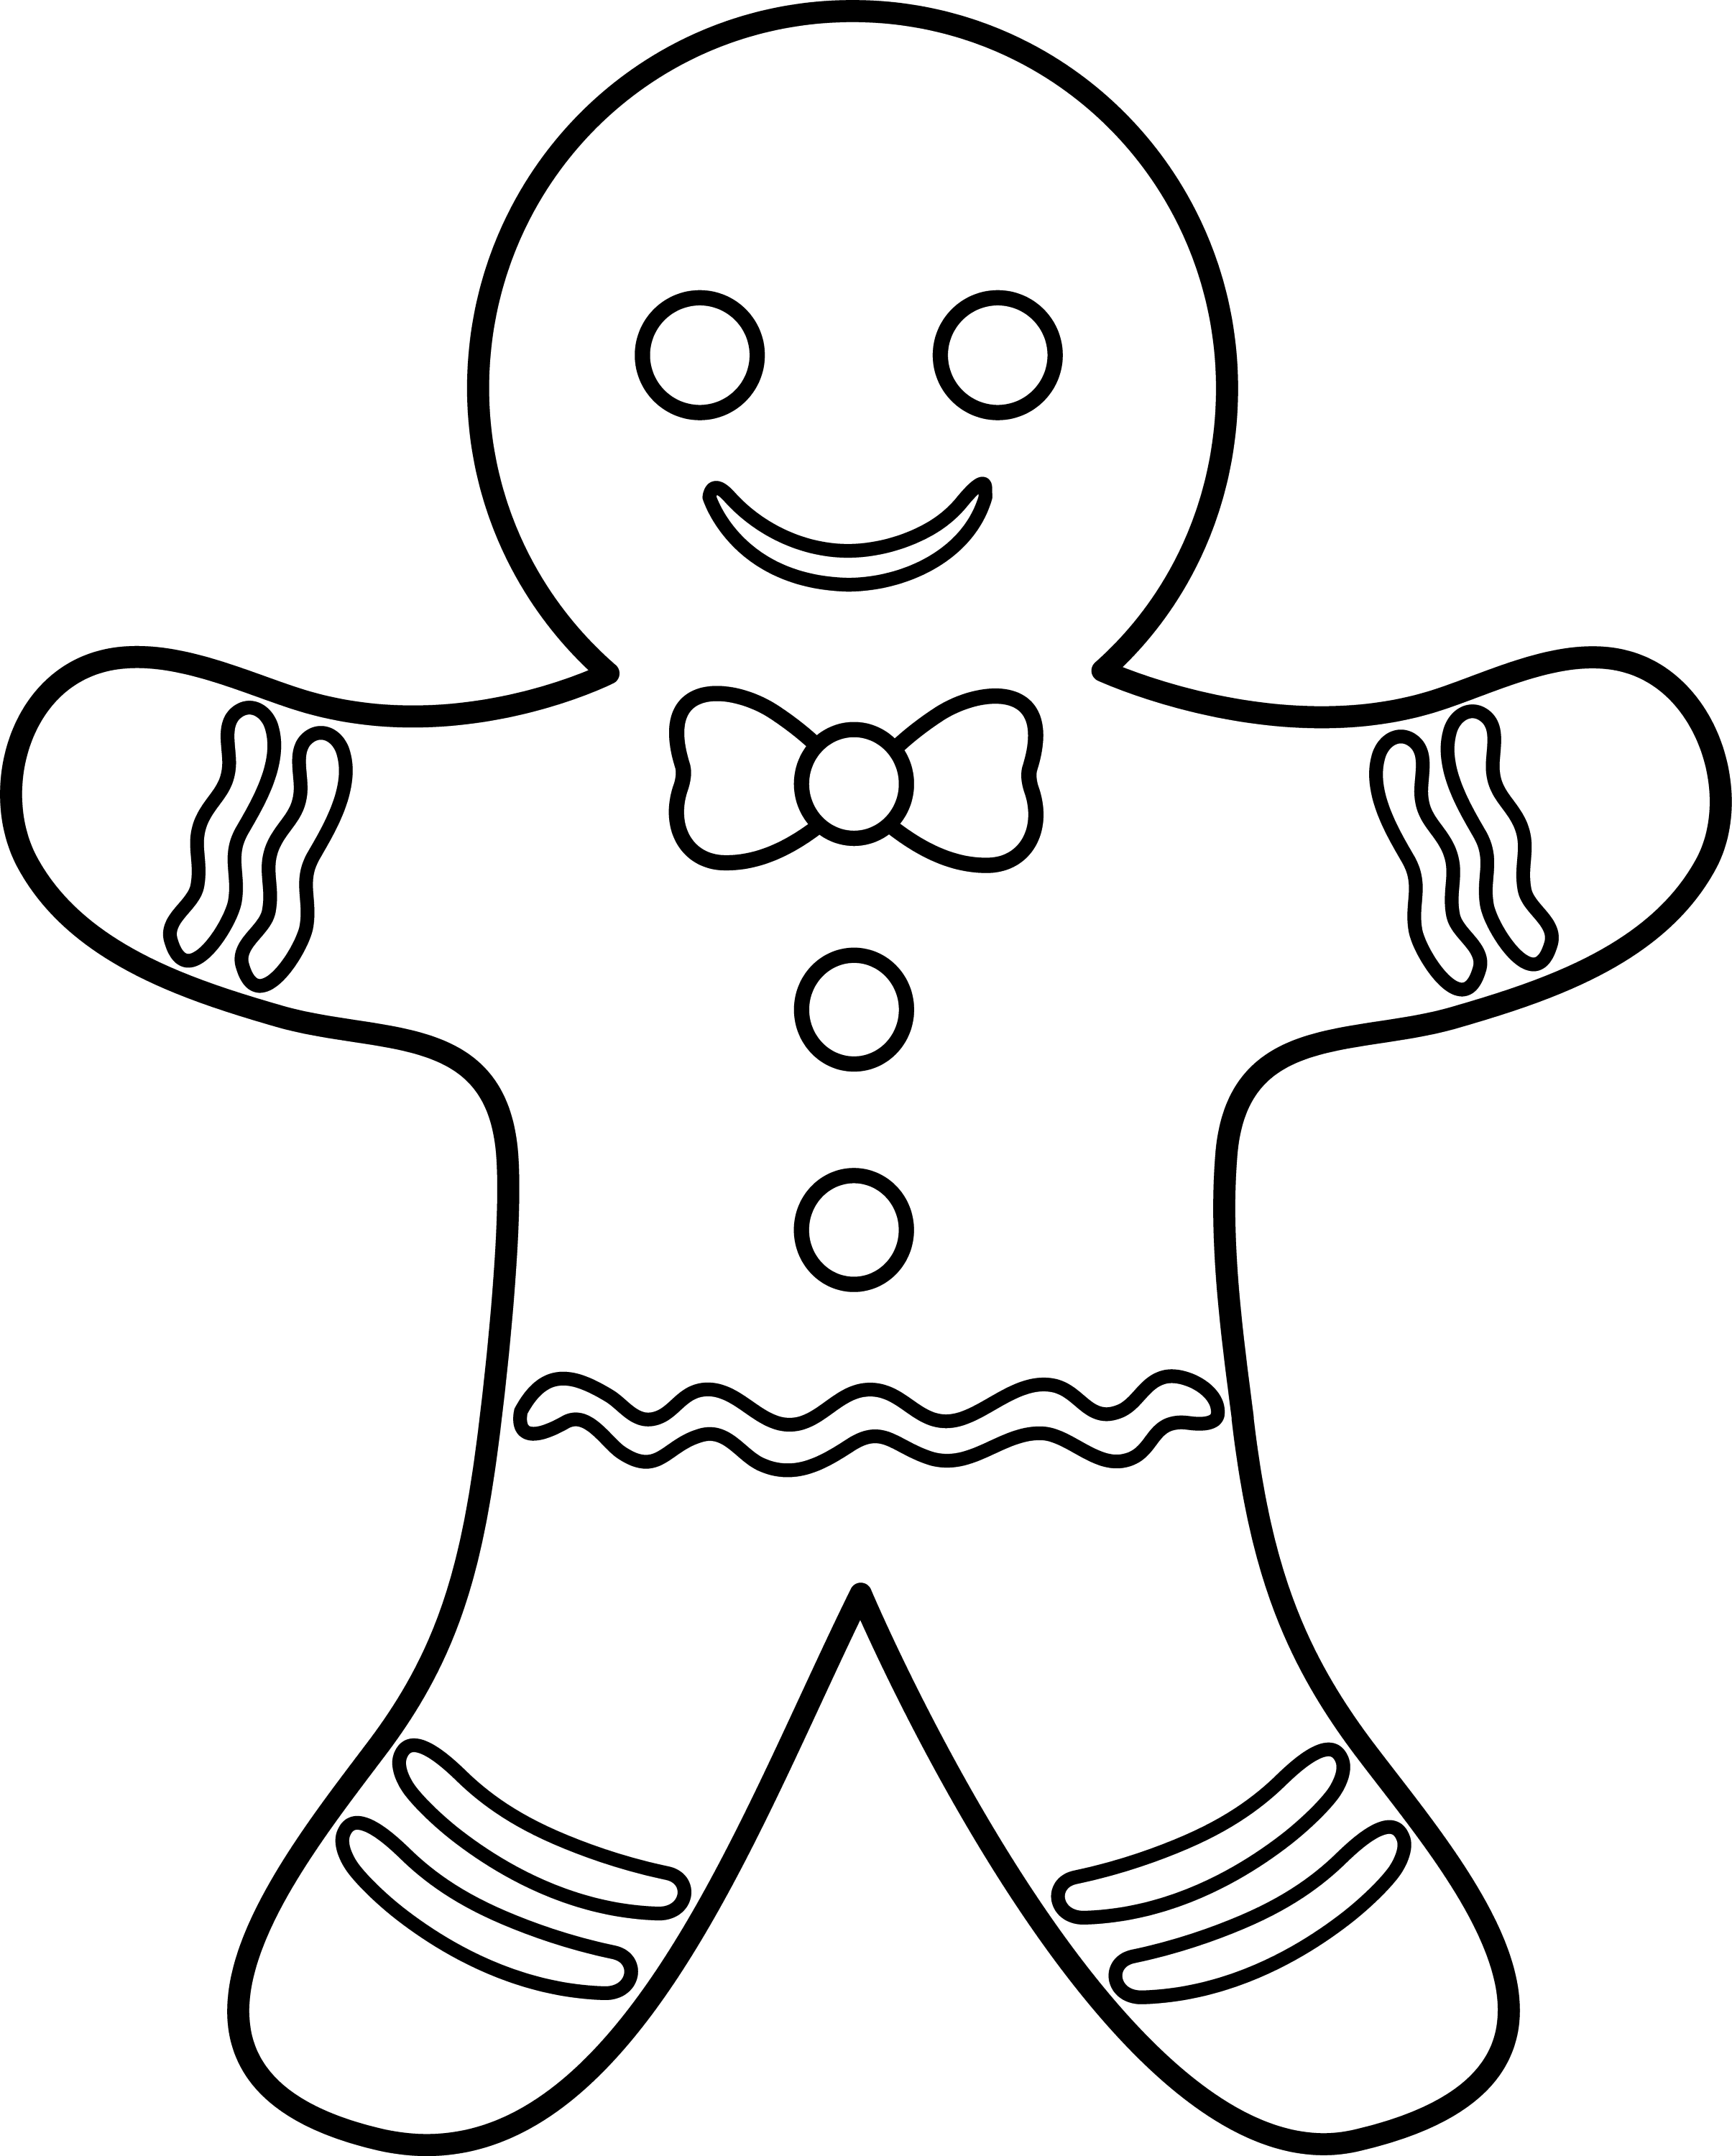 Gingerbread Man Lineart